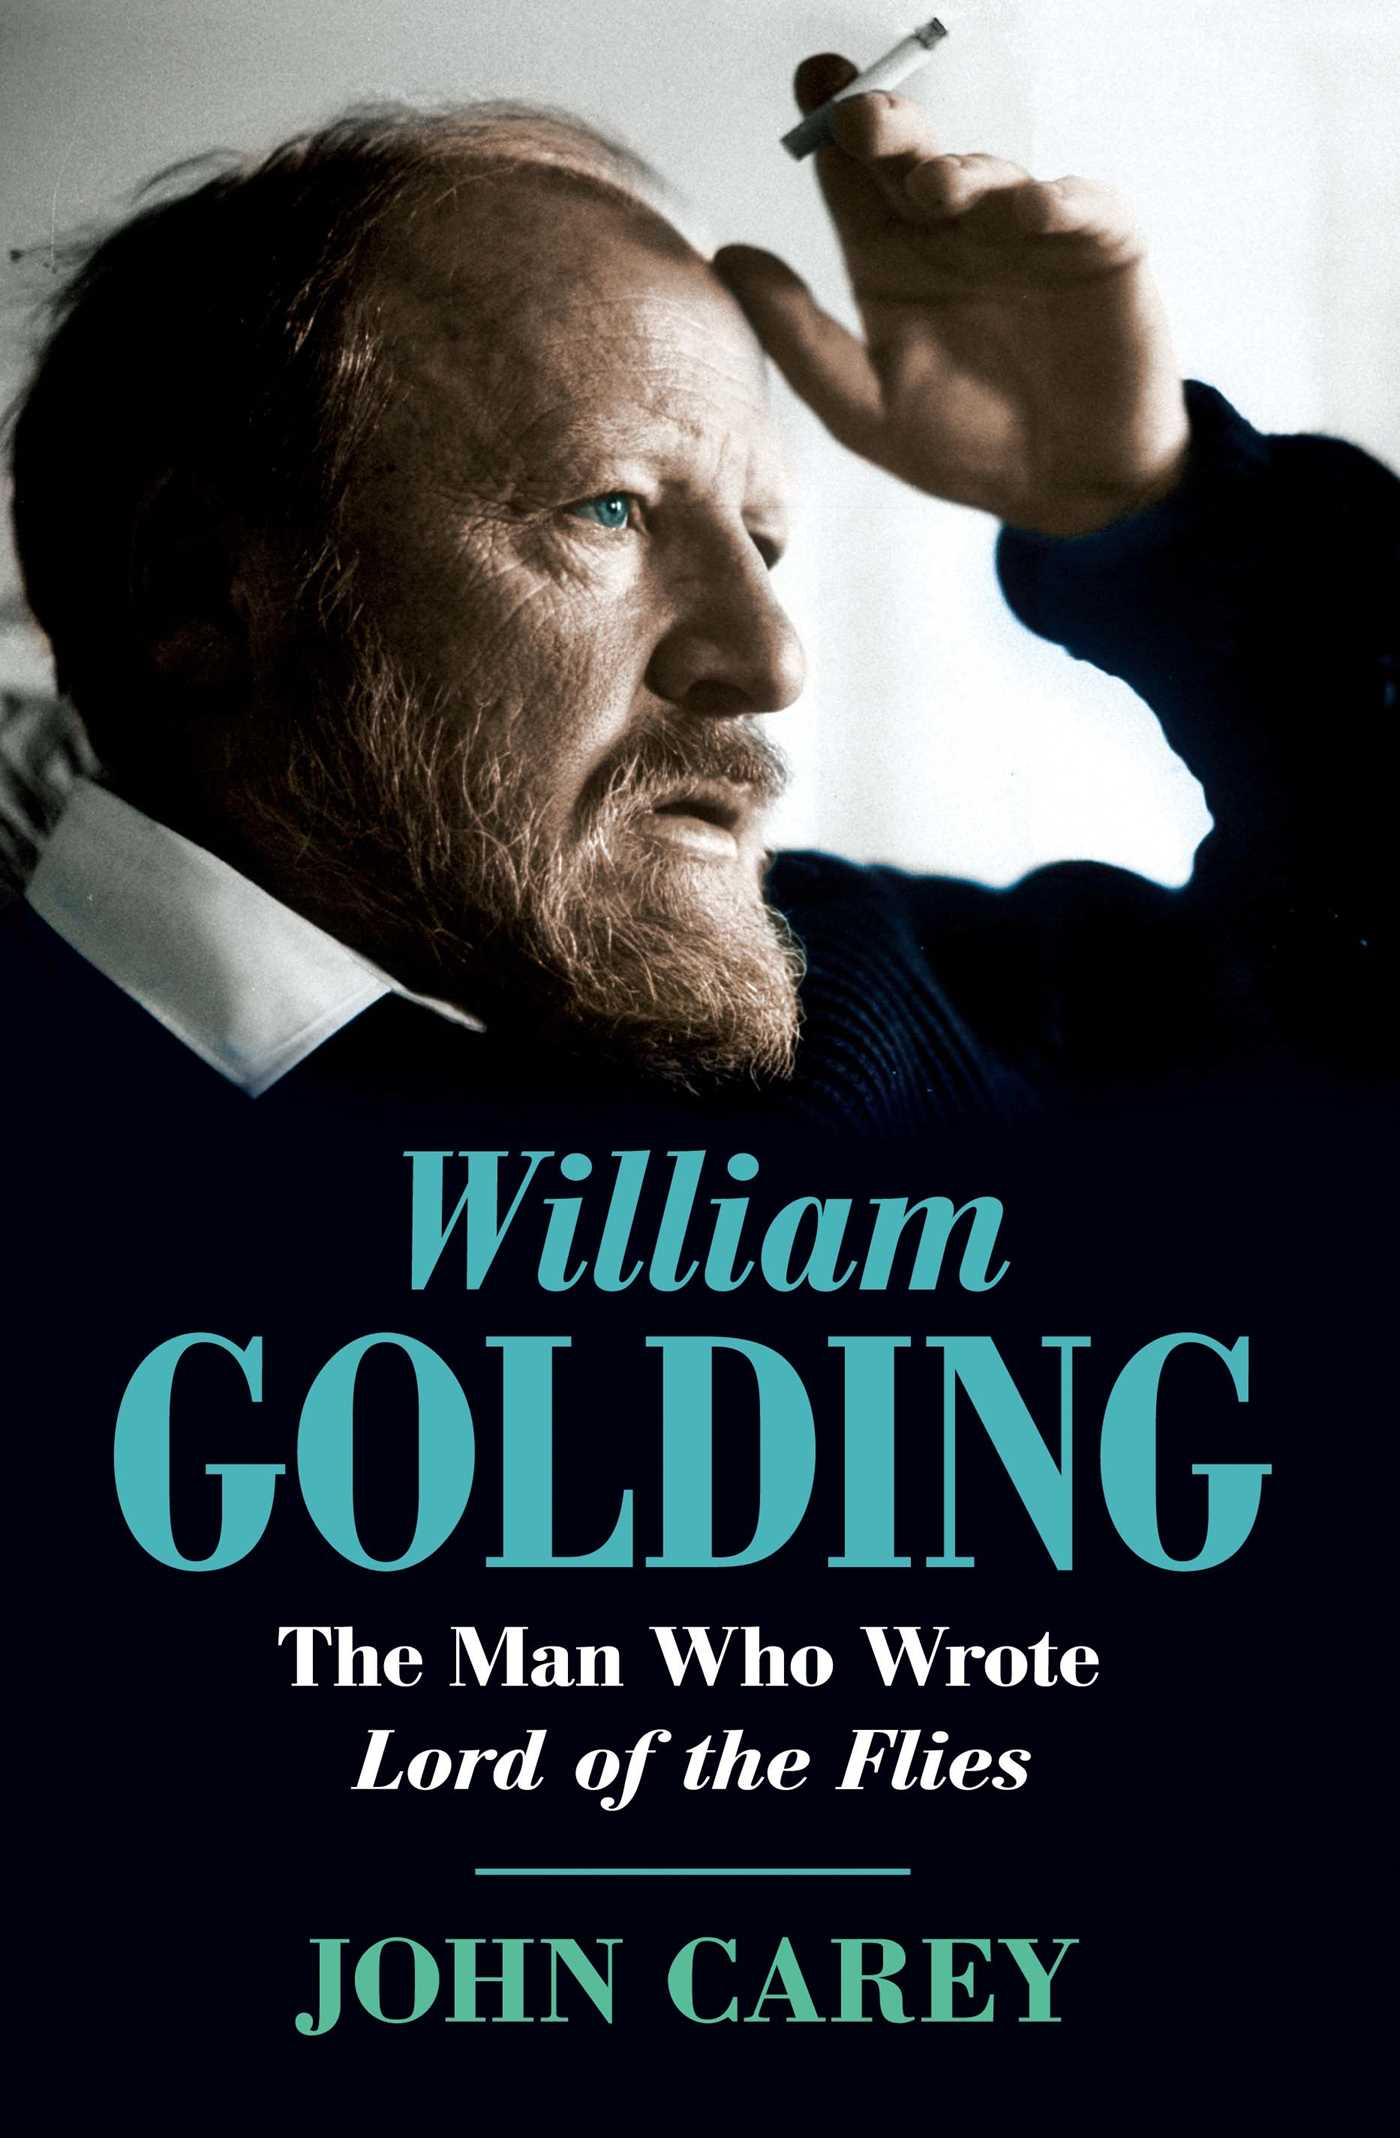 William-golding-9781439187333_hr